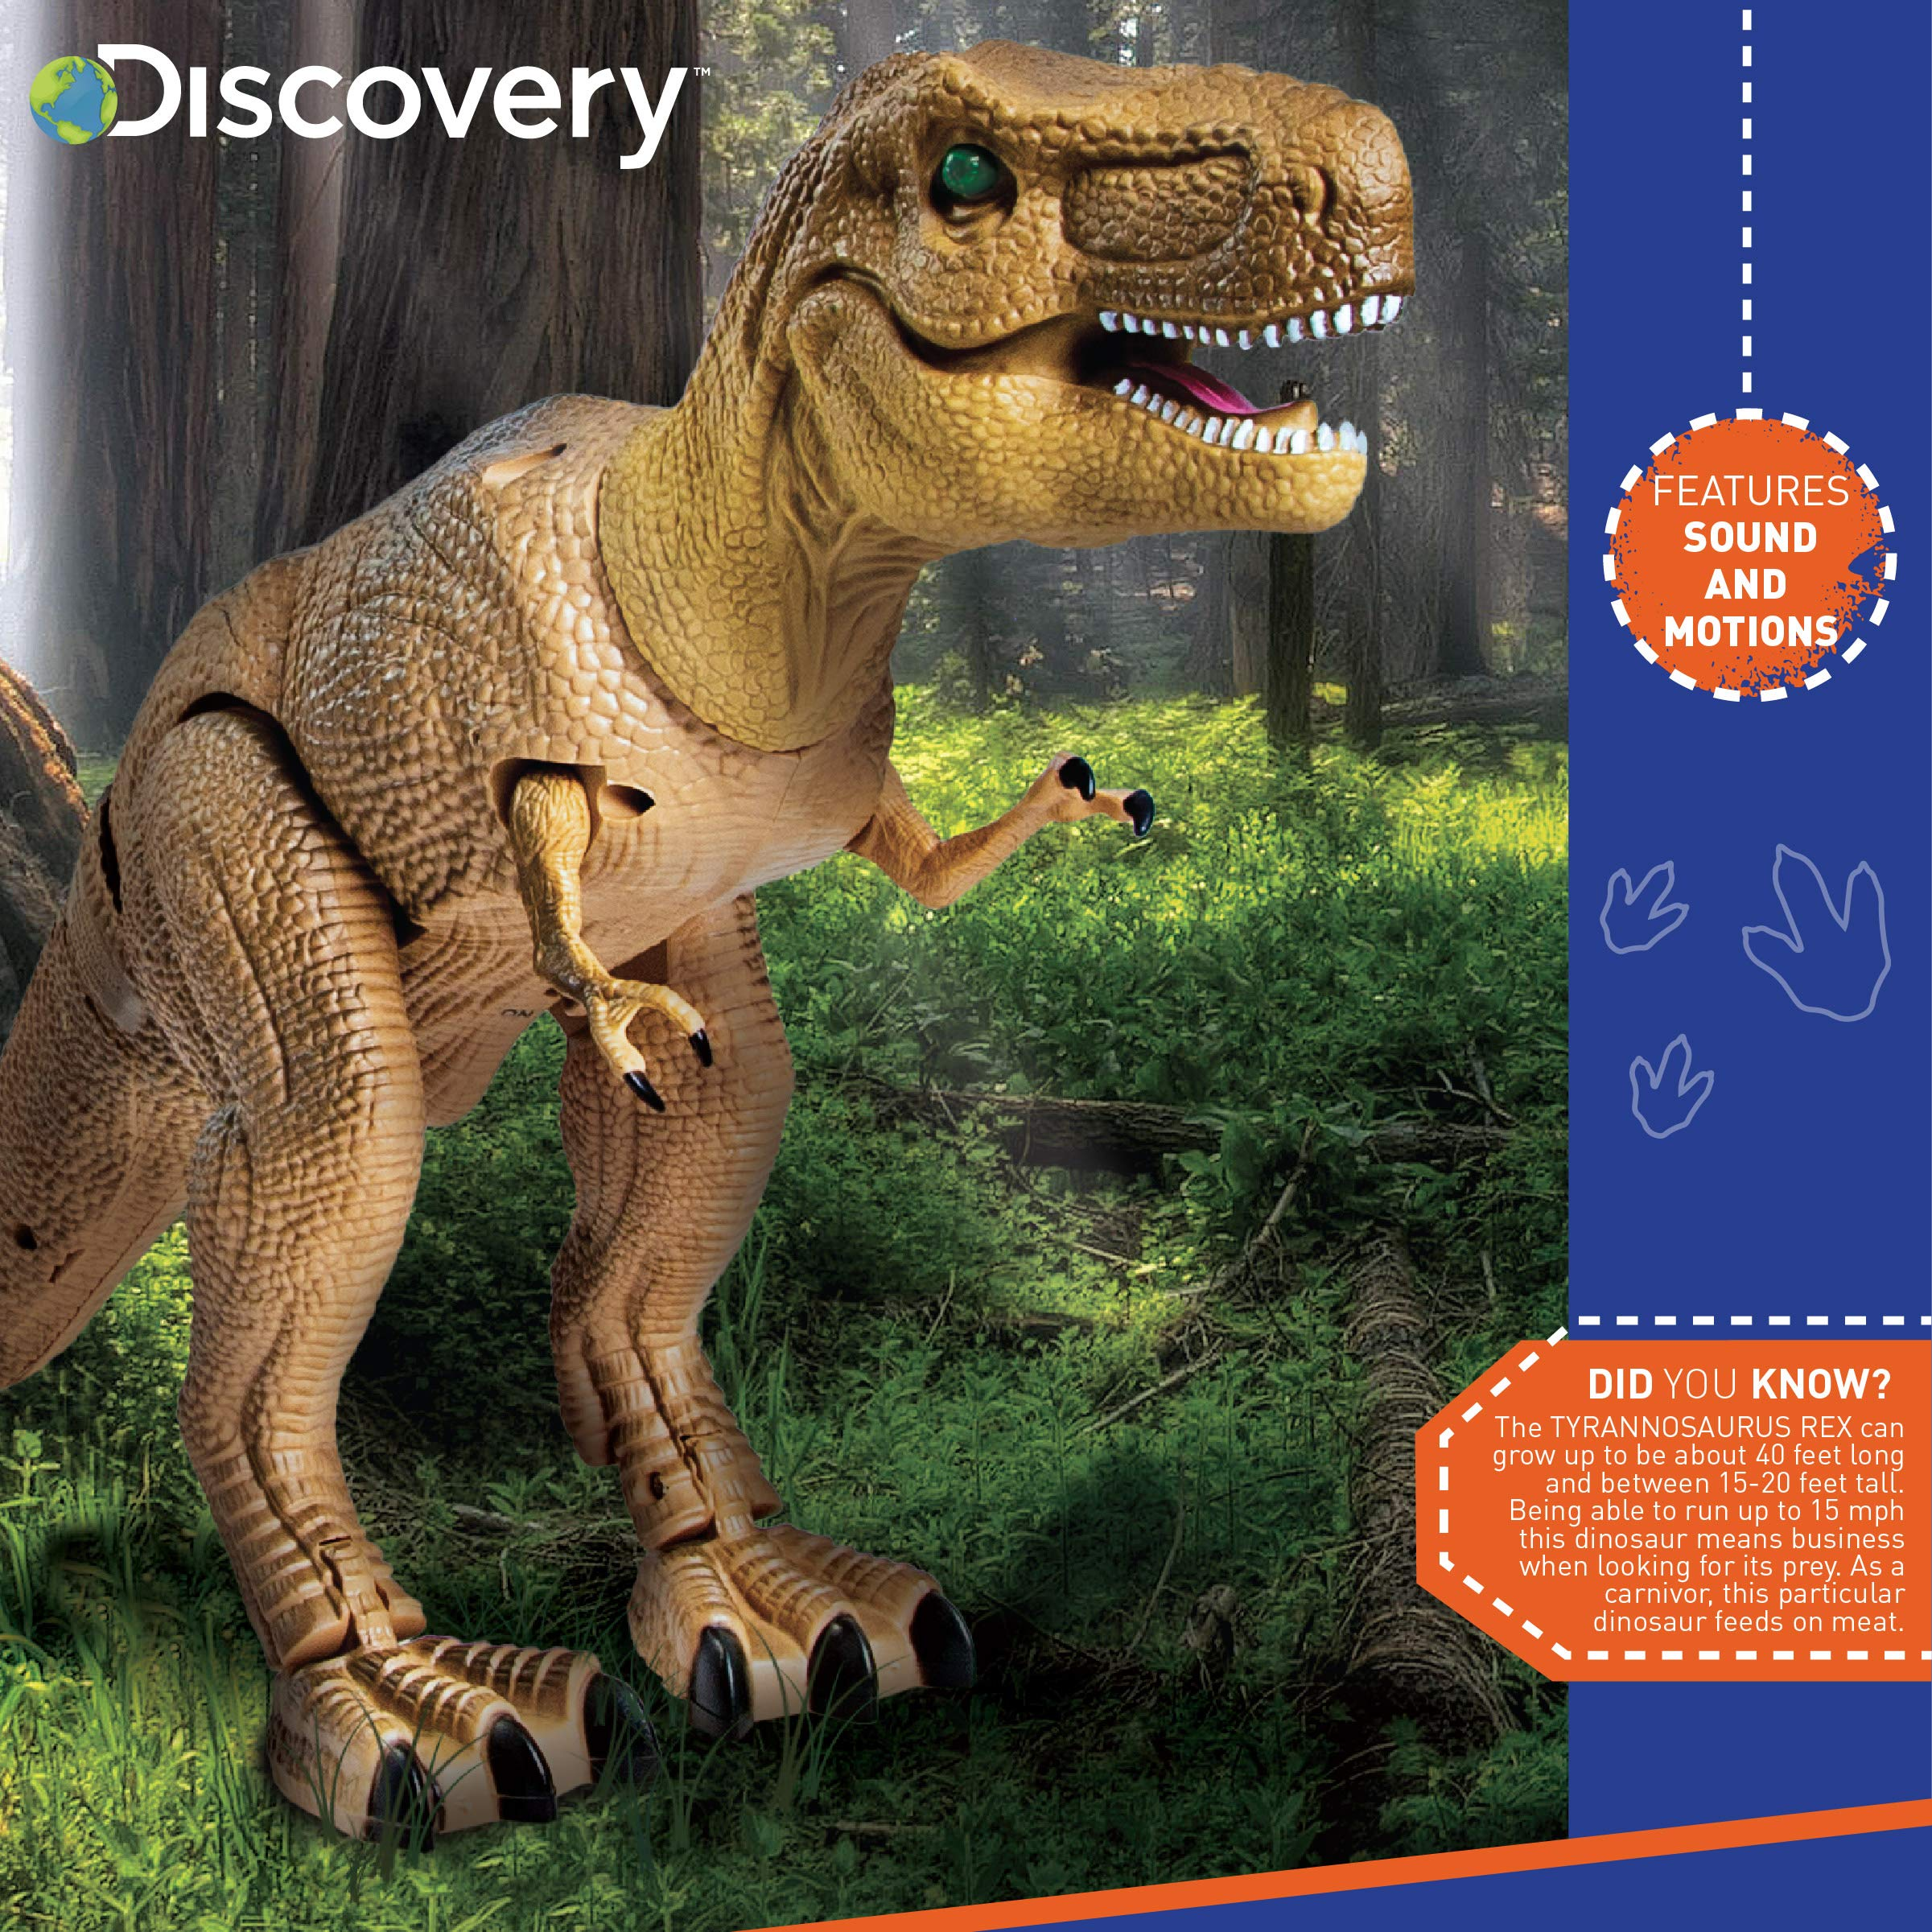 Discovery Kids Remote Control RC T Rex Dinosaur Electronic Toy Action Figure Moving & Walking Robot w/Roaring Sounds & Chomping Mouth, Realistic Plastic Model, Boys & Girls 6 Years Old+ by Discovery Kids (Image #3)